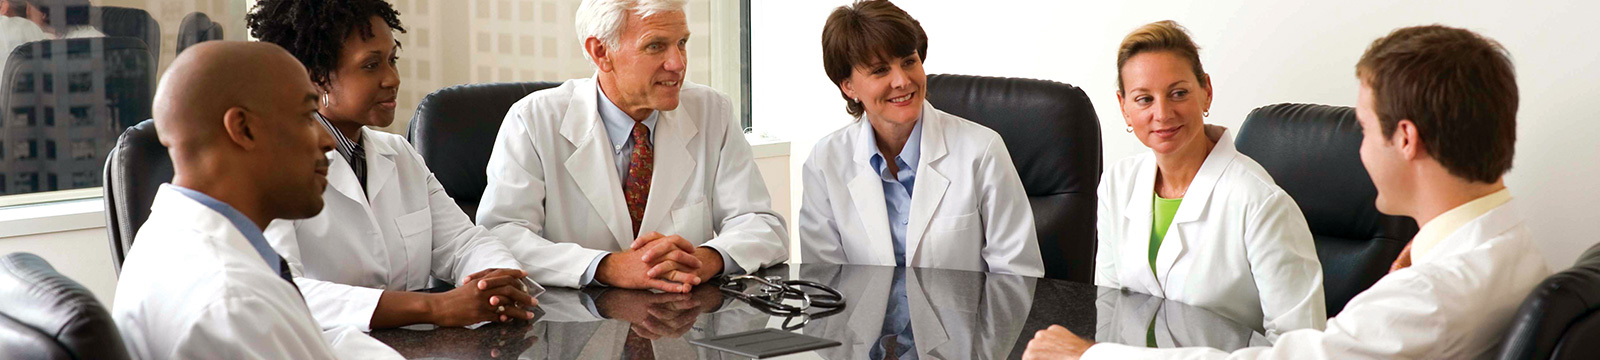 Physicians meeting at conference table